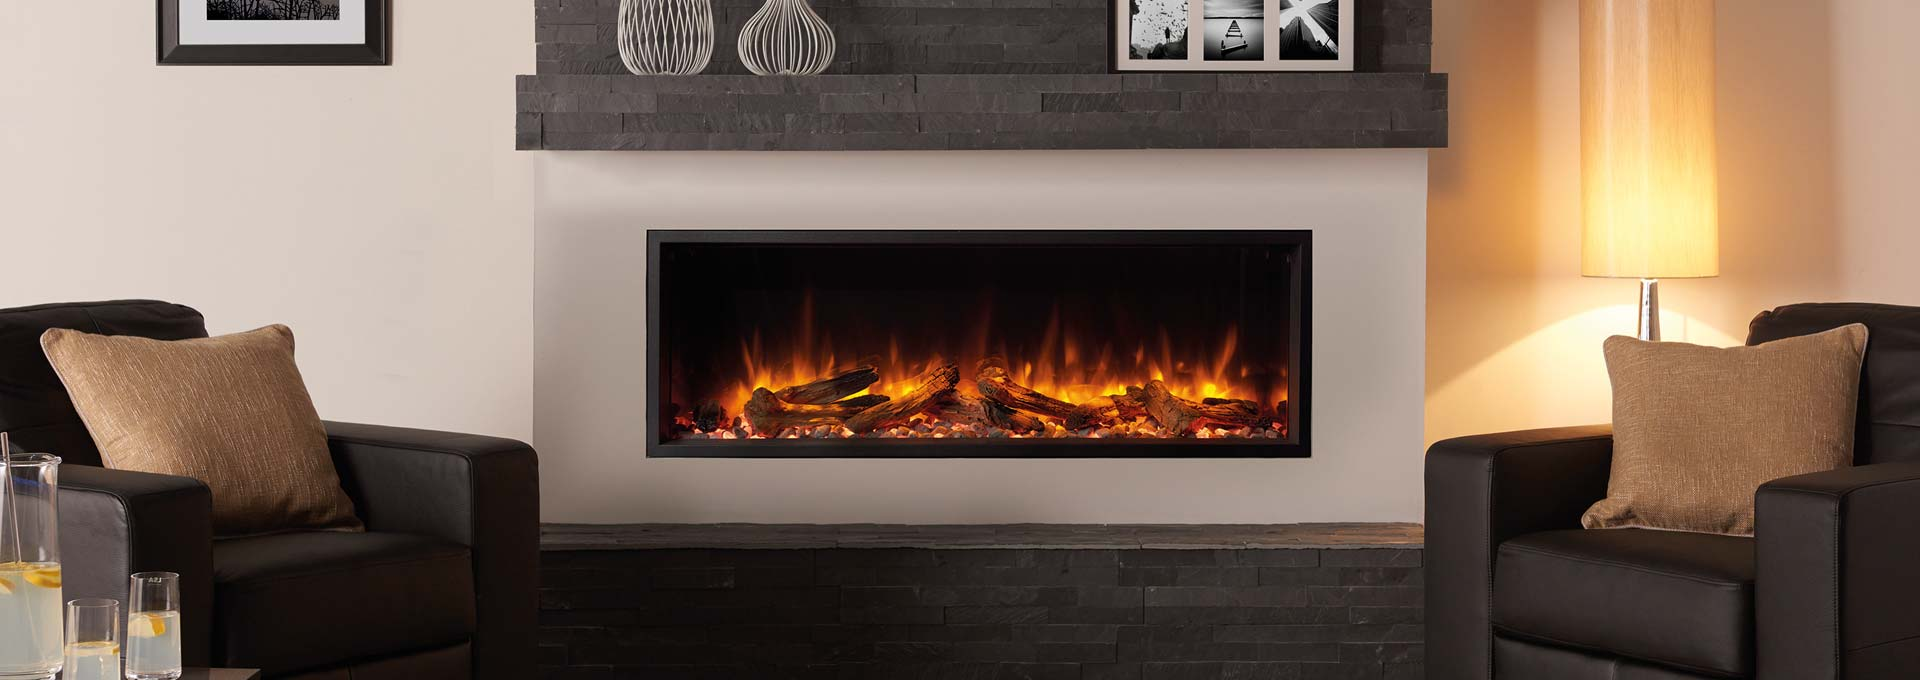 Modern Electric Fireplaces Built In Wall Mounted Electric Fireplaces Regency